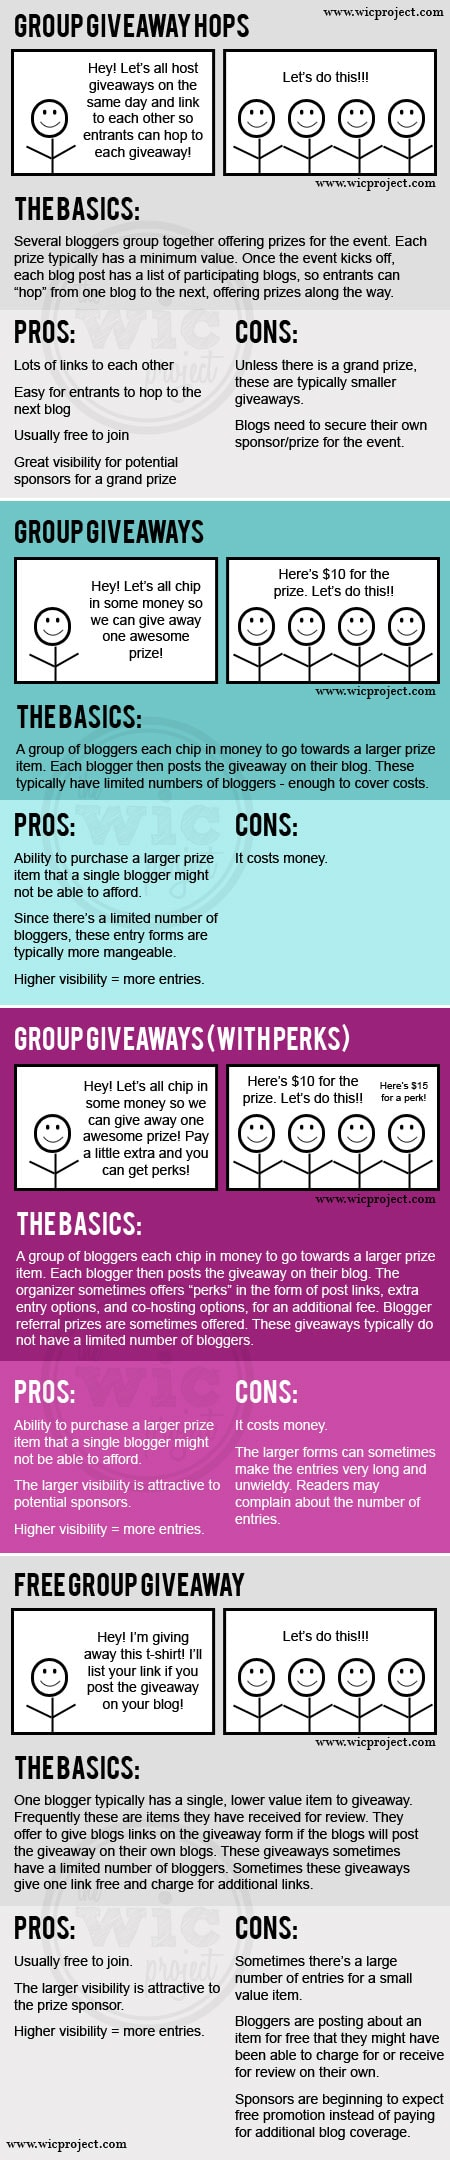 Blog Group Giveaways Infographic